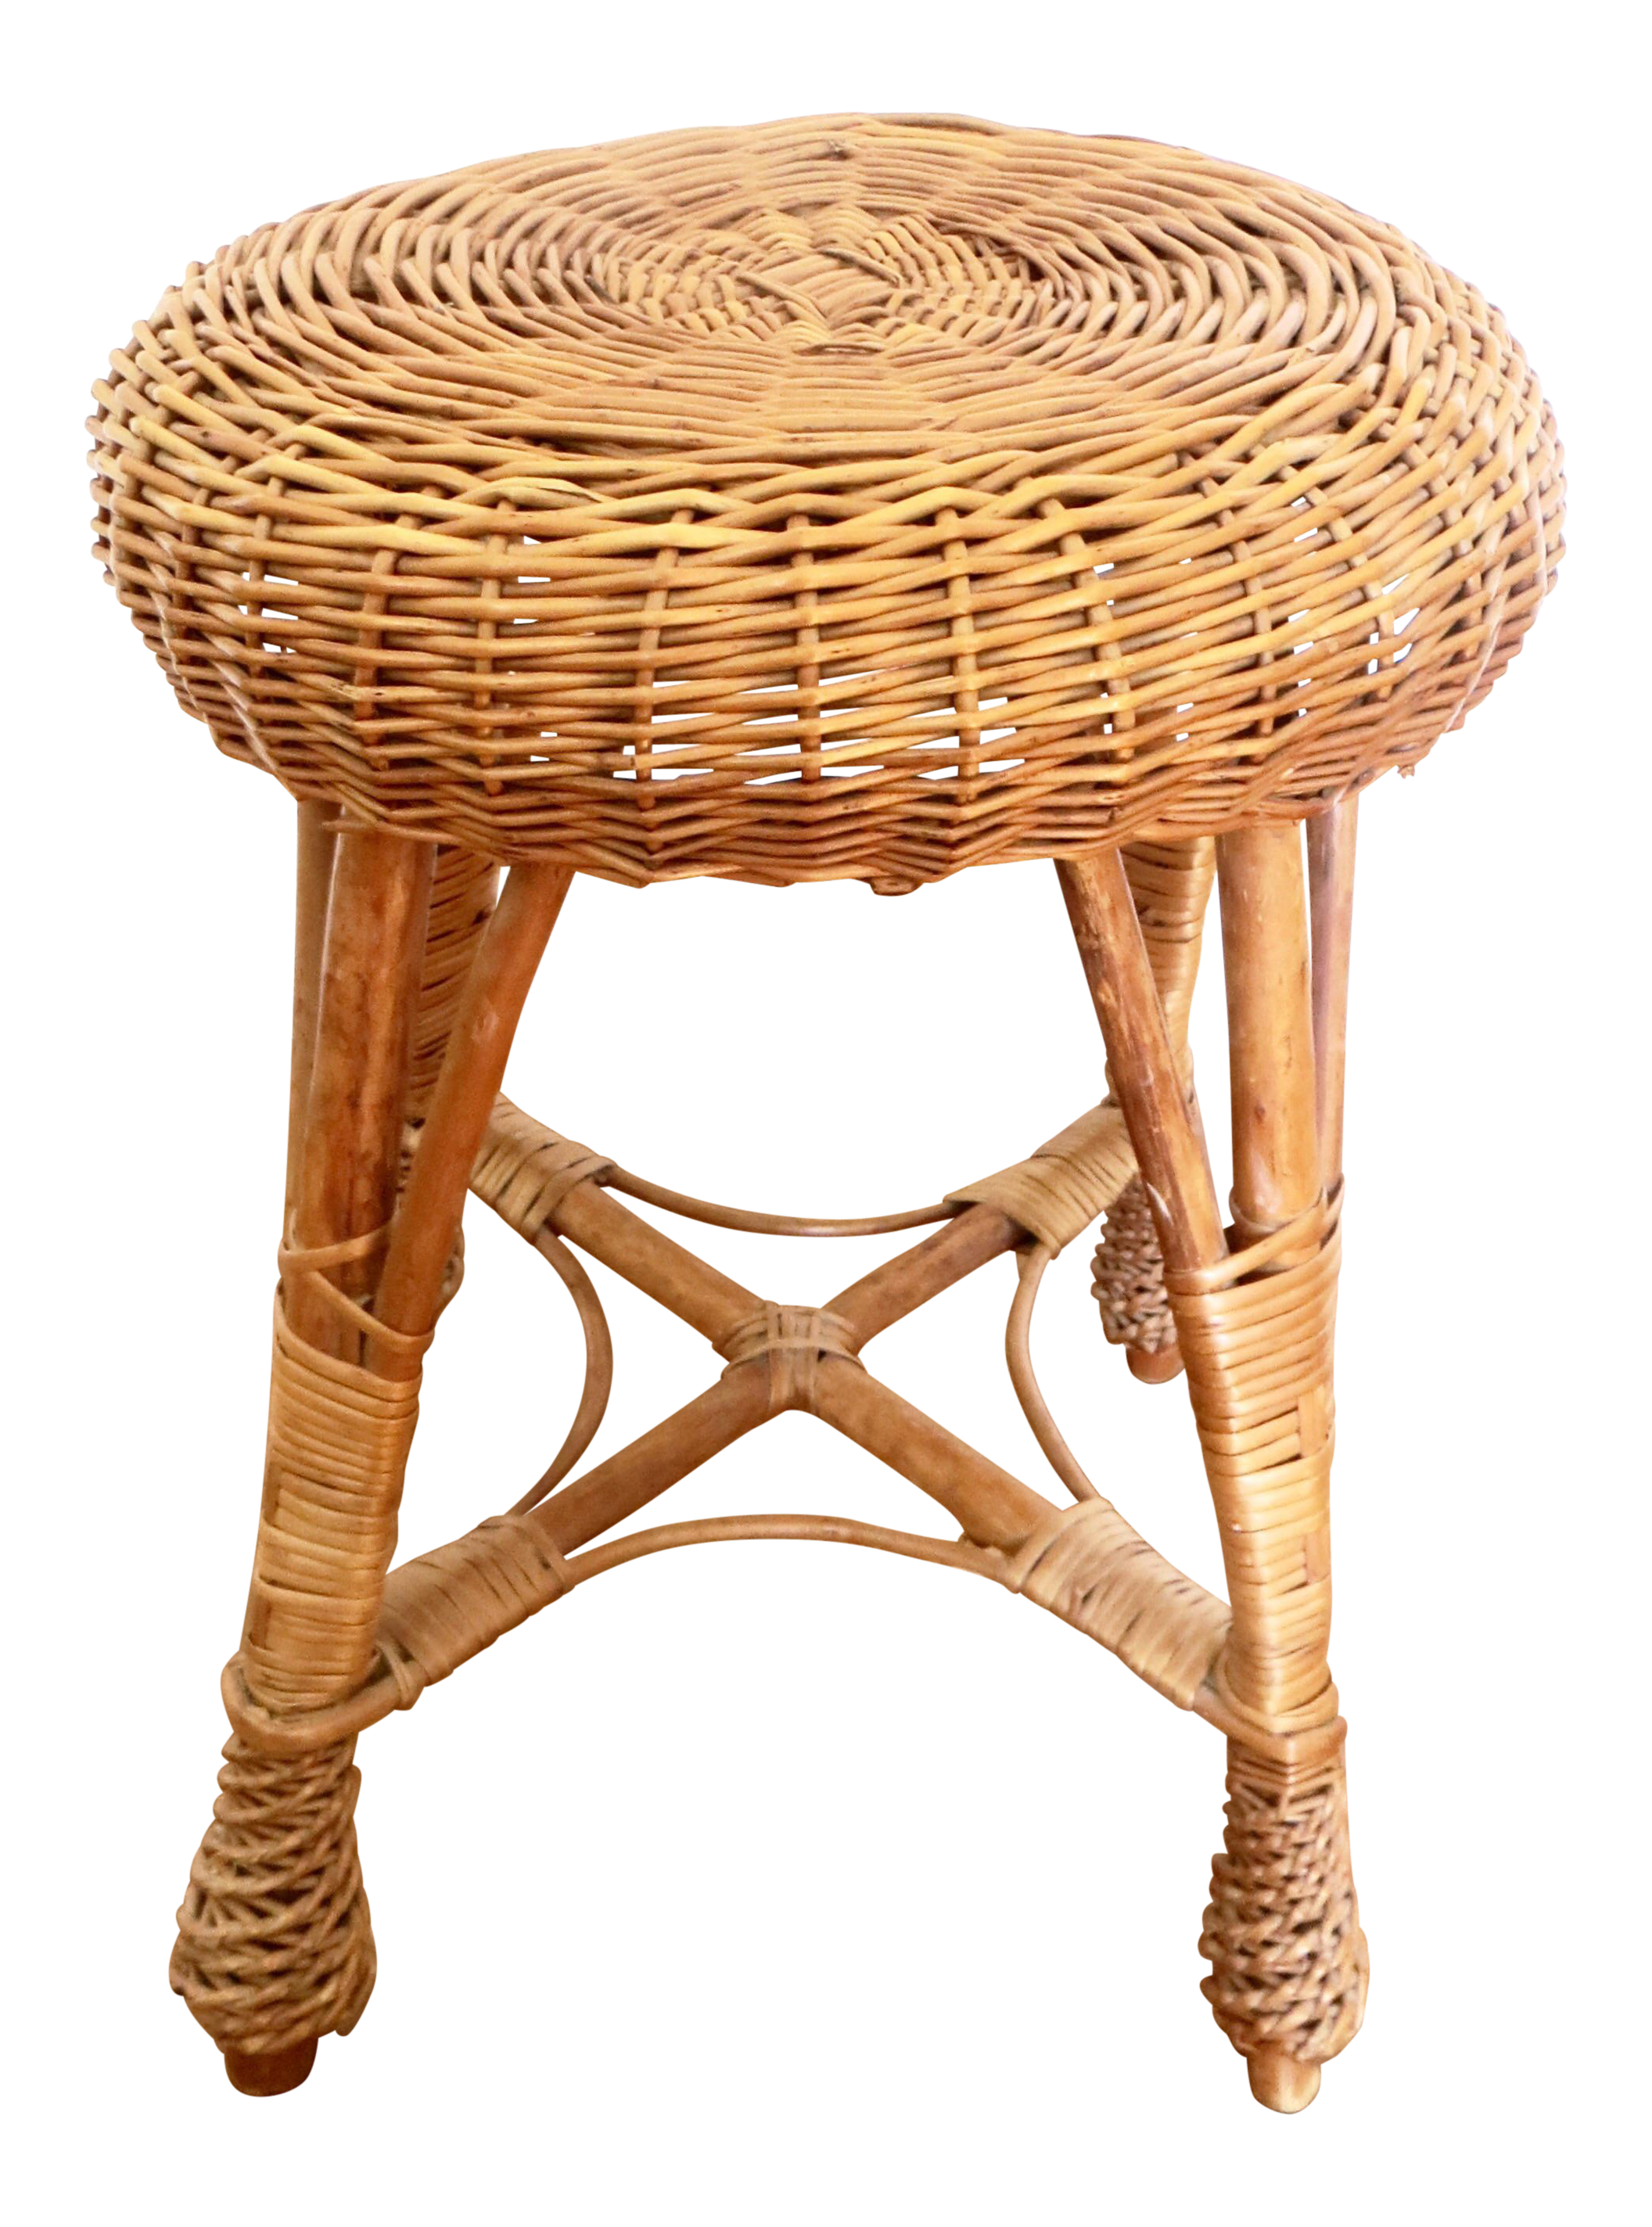 Groovy Vintage Round Woven Rattan Wicker Stool Or Plant Stand Onthecornerstone Fun Painted Chair Ideas Images Onthecornerstoneorg